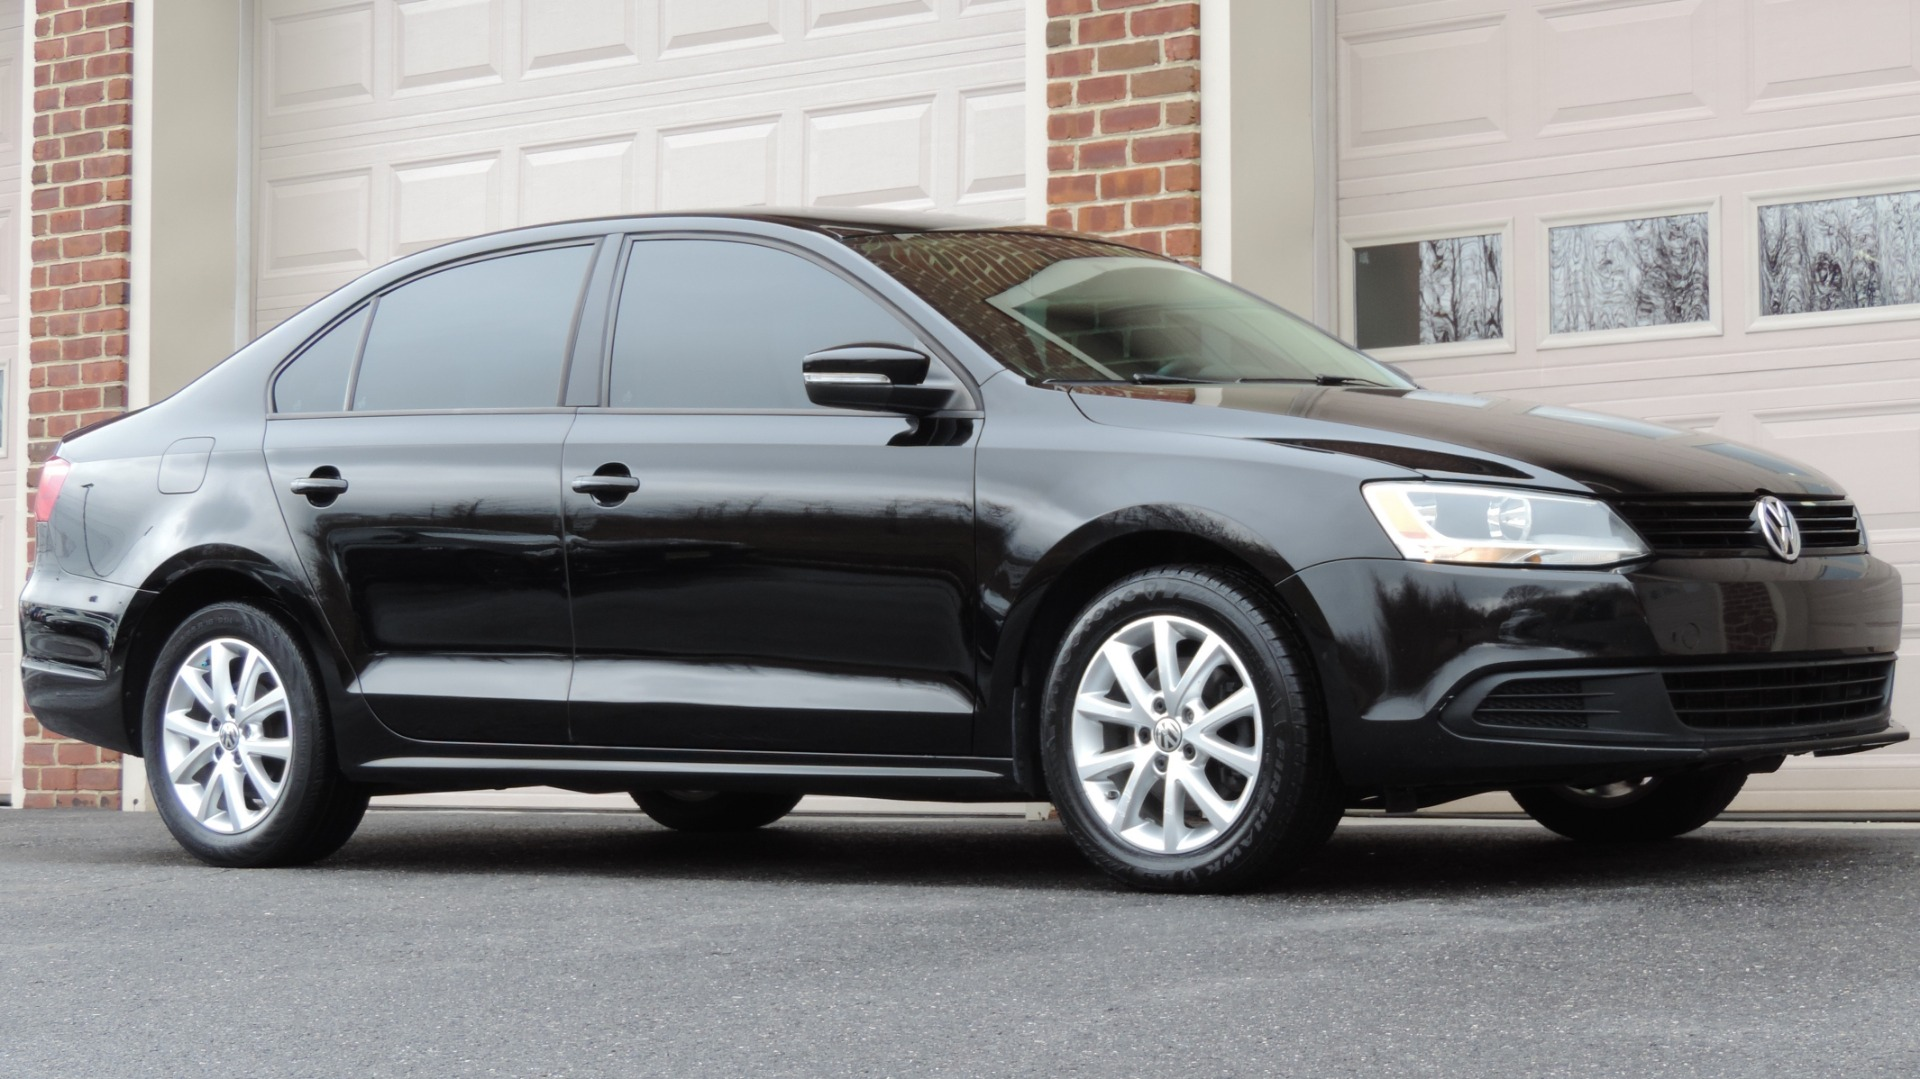 2011 Volkswagen Jetta Oil Type >> 2011 Volkswagen Jetta Oil Type | New Car Release Information